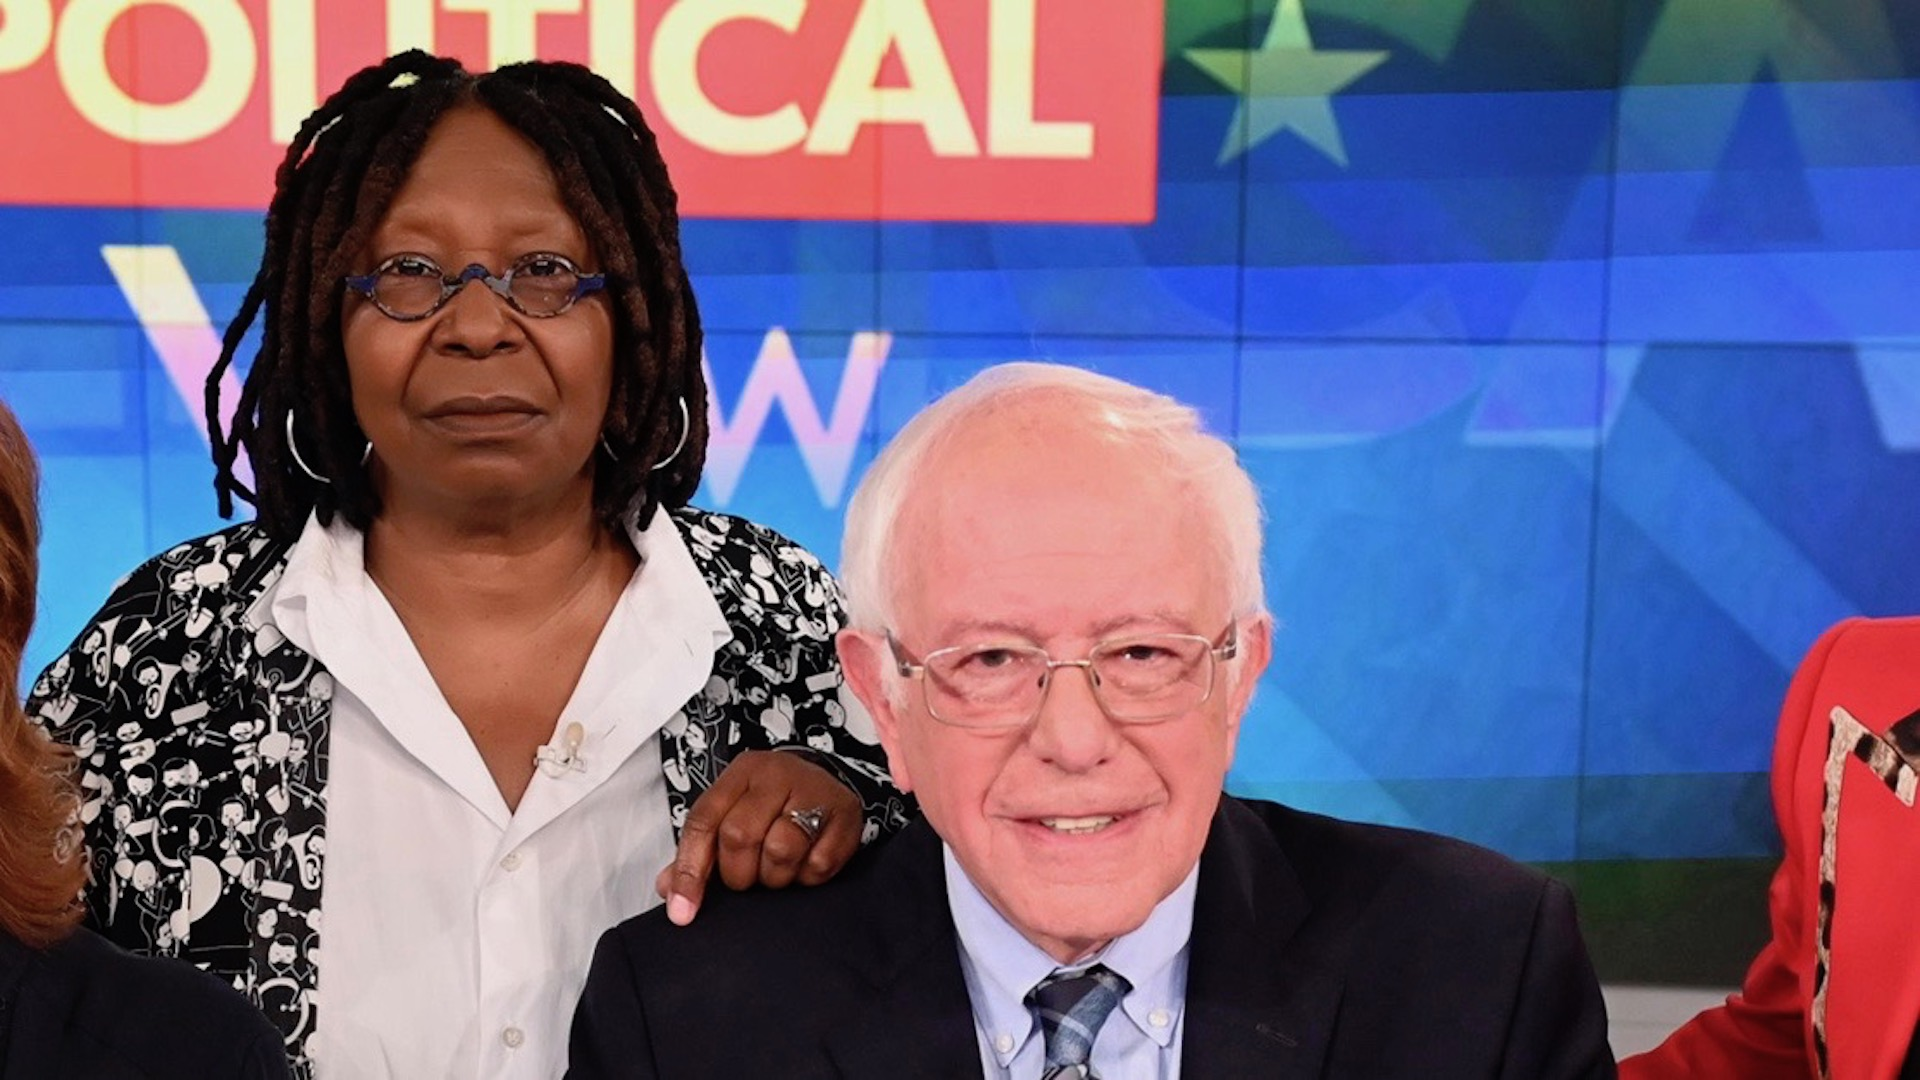 Whoopi Goldberg Grills Bernie Sanders Over His Decision to Stay in Primary Race